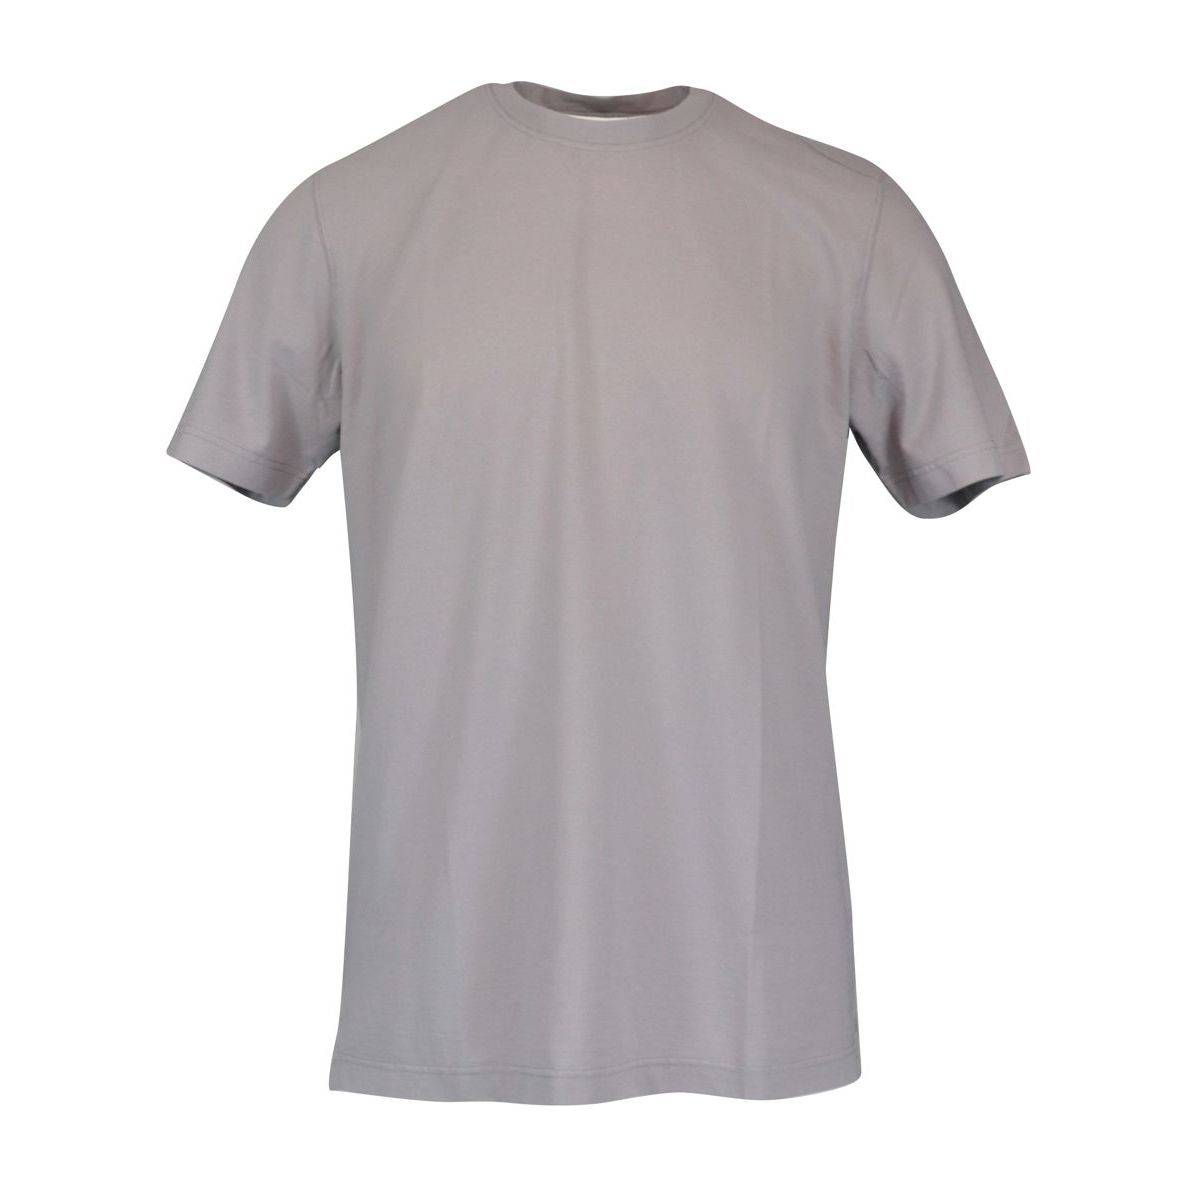 Crew neck t-shirt in ice cotton Light grey Gran Sasso